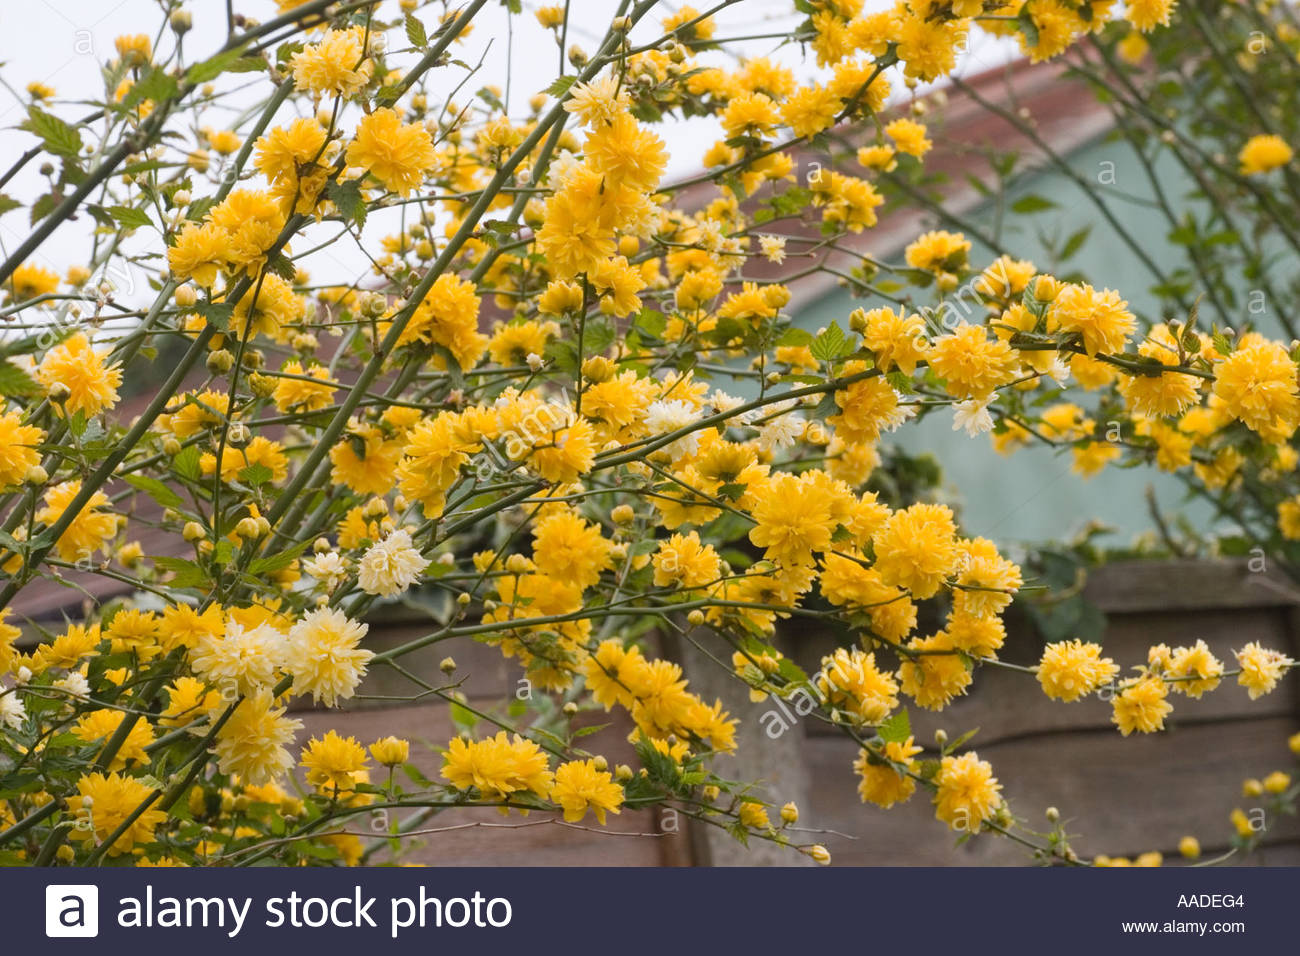 Yellow Kerria Japonica Flower Stock Photo, Royalty Free Image.